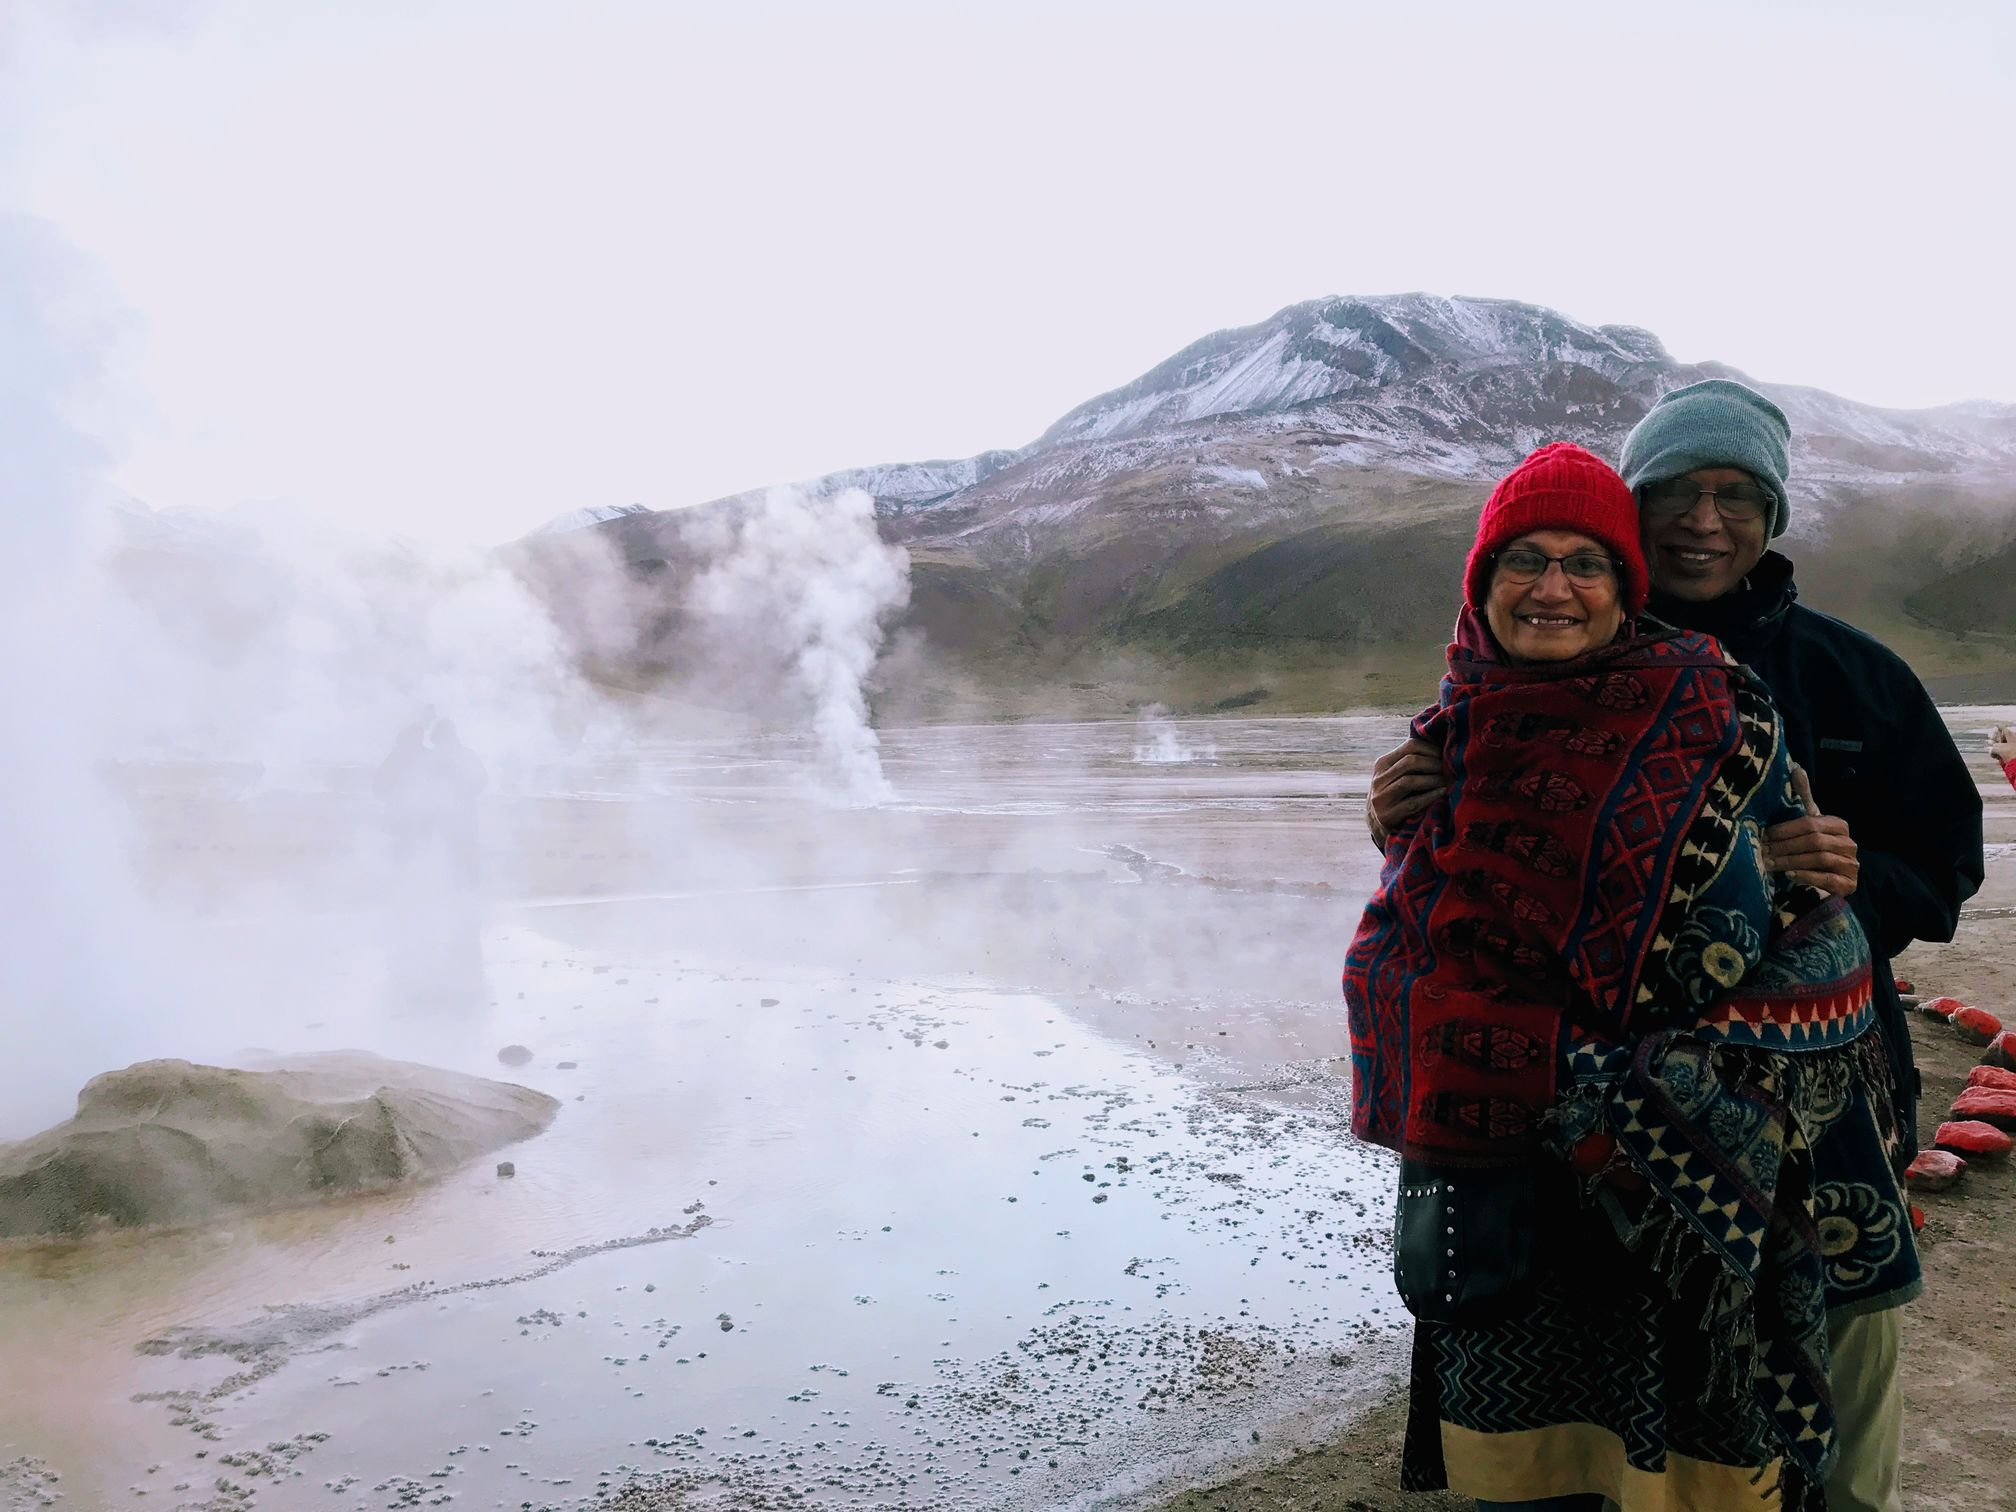 My parents at the Tatio Geysers in Atacama Desert, Chile